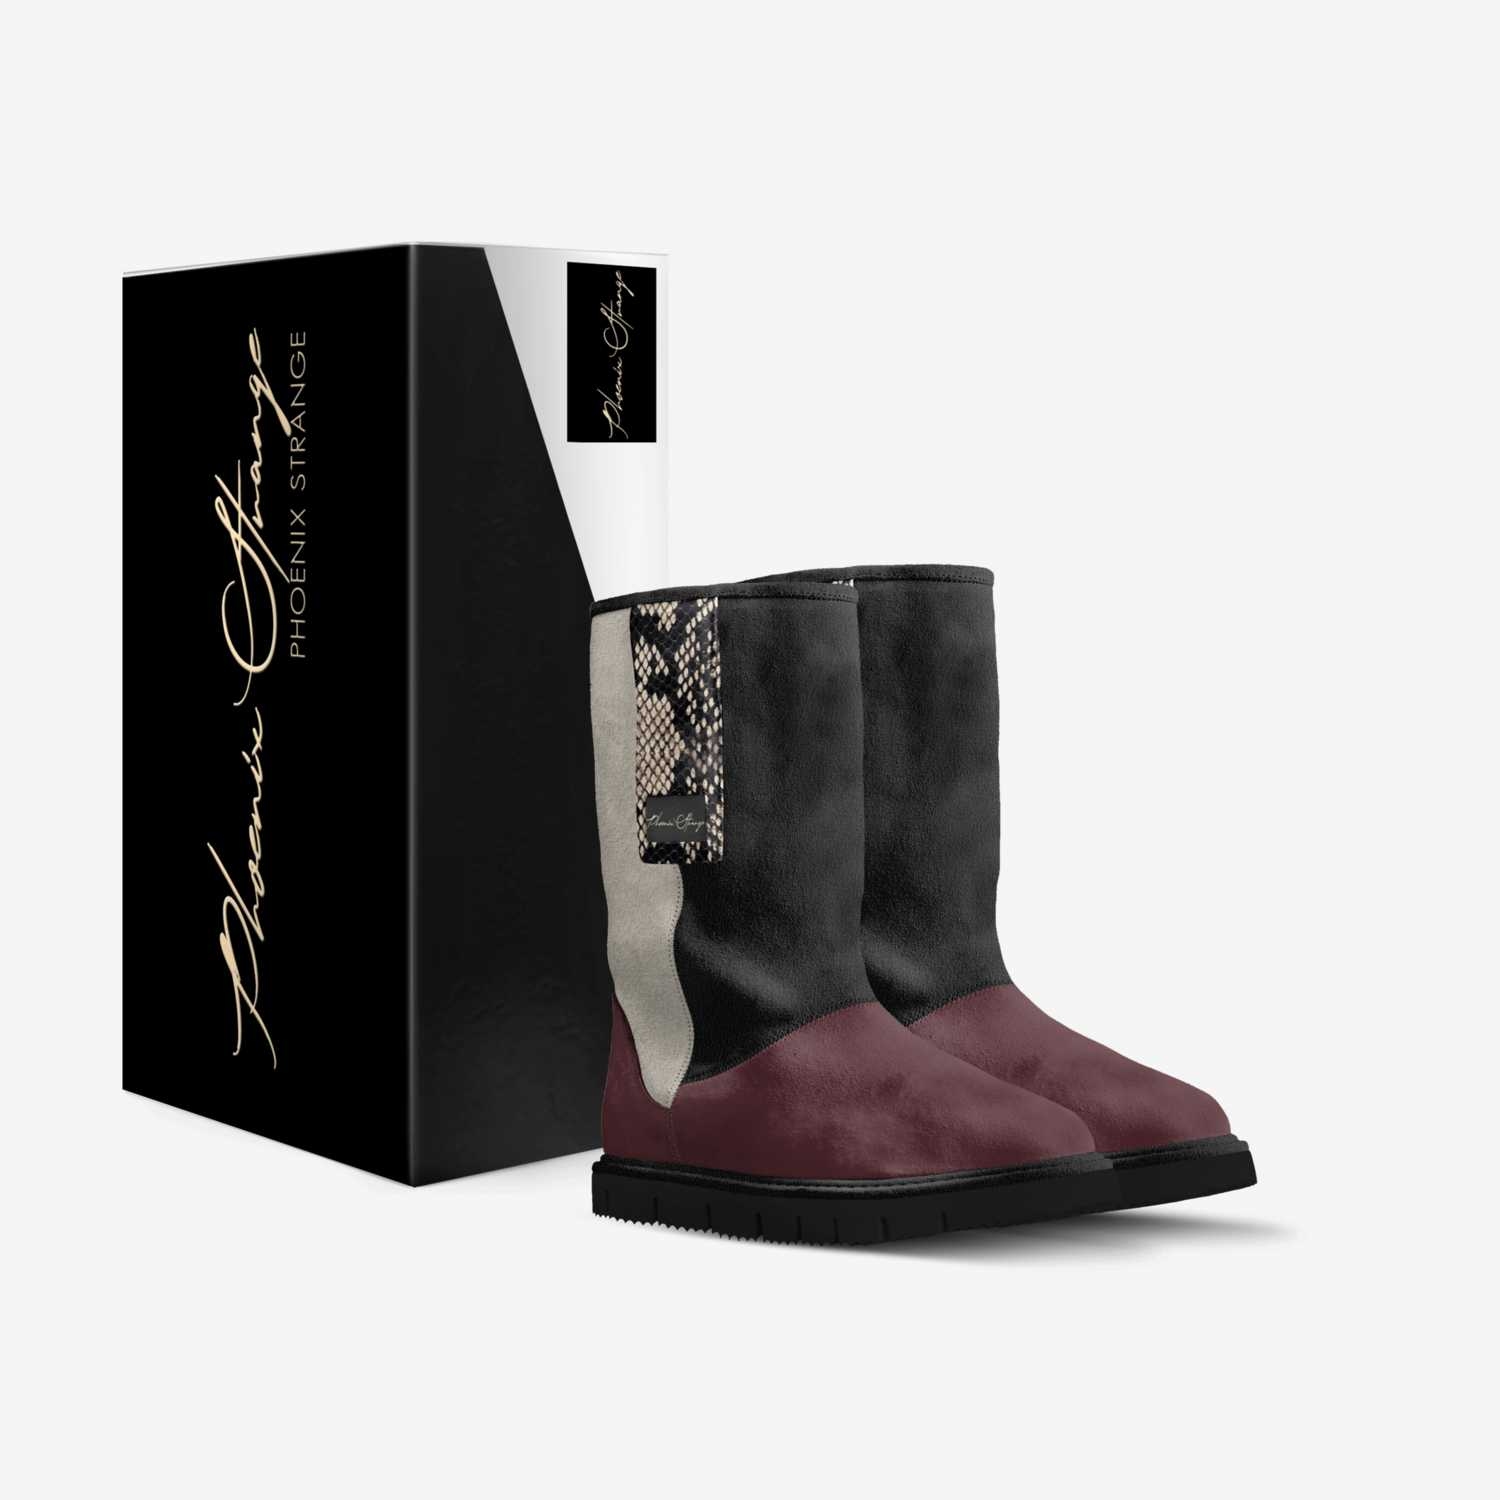 Anjelica custom made in Italy shoes by Phoenix Strange | Box view